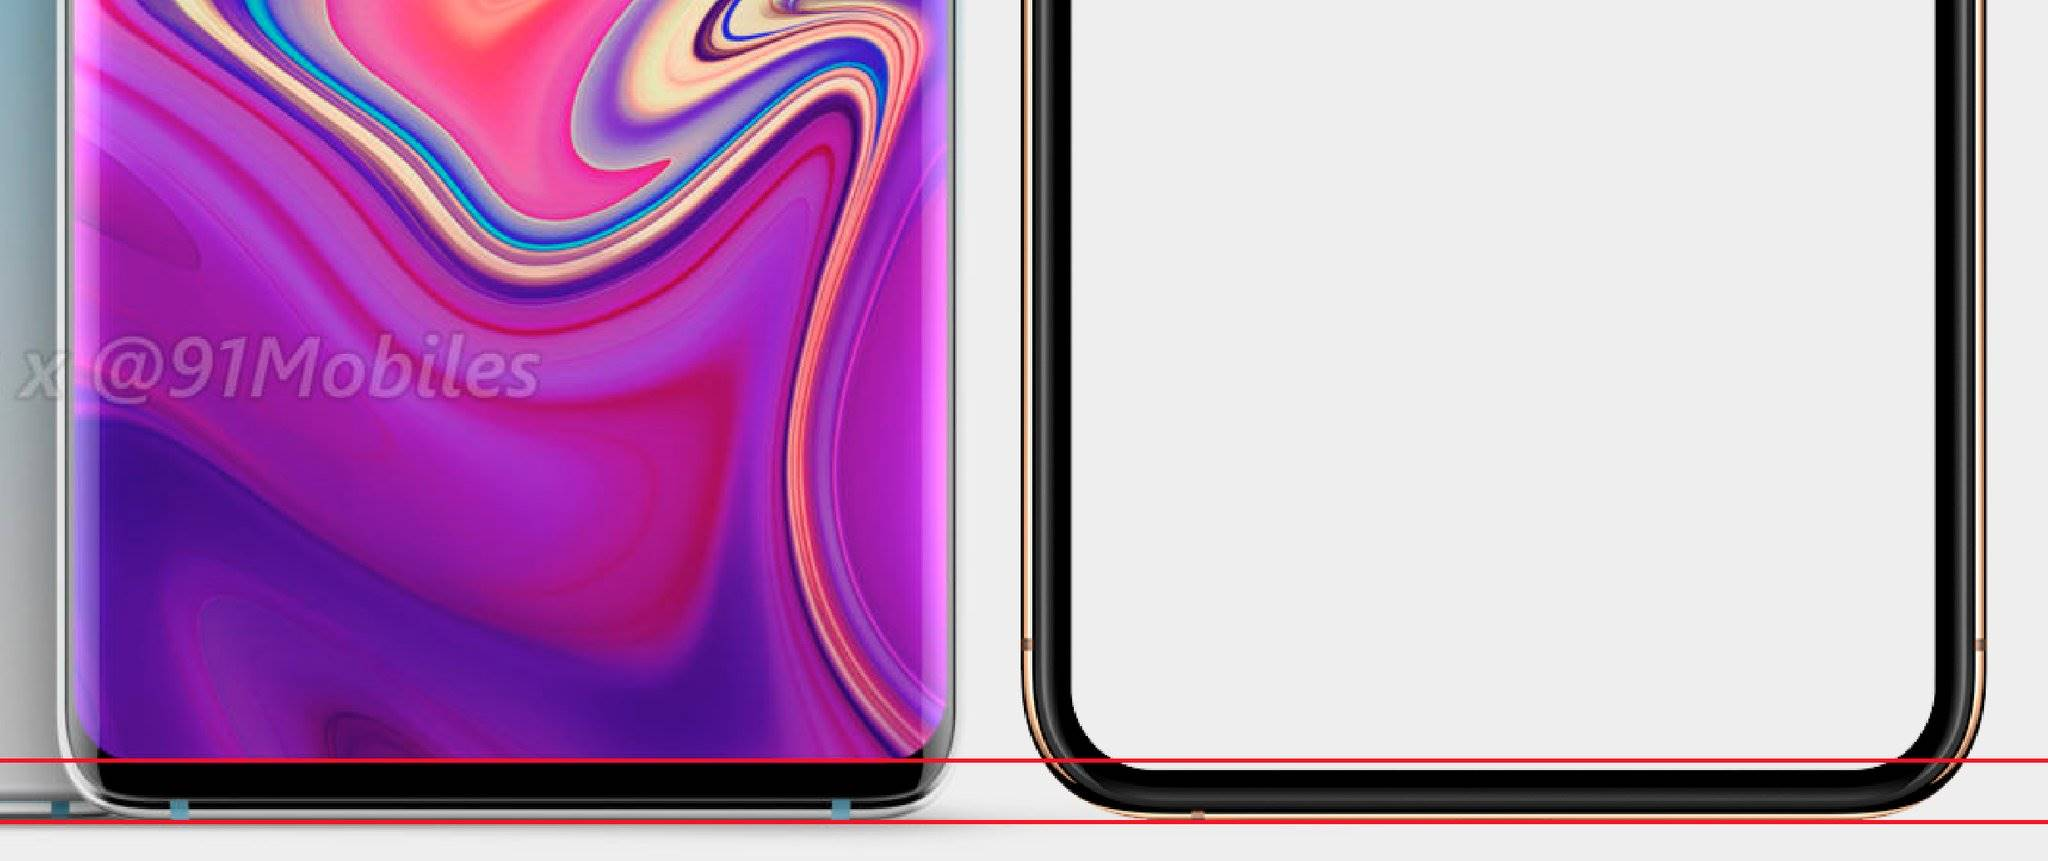 Samsung GALAXY S10 secret design